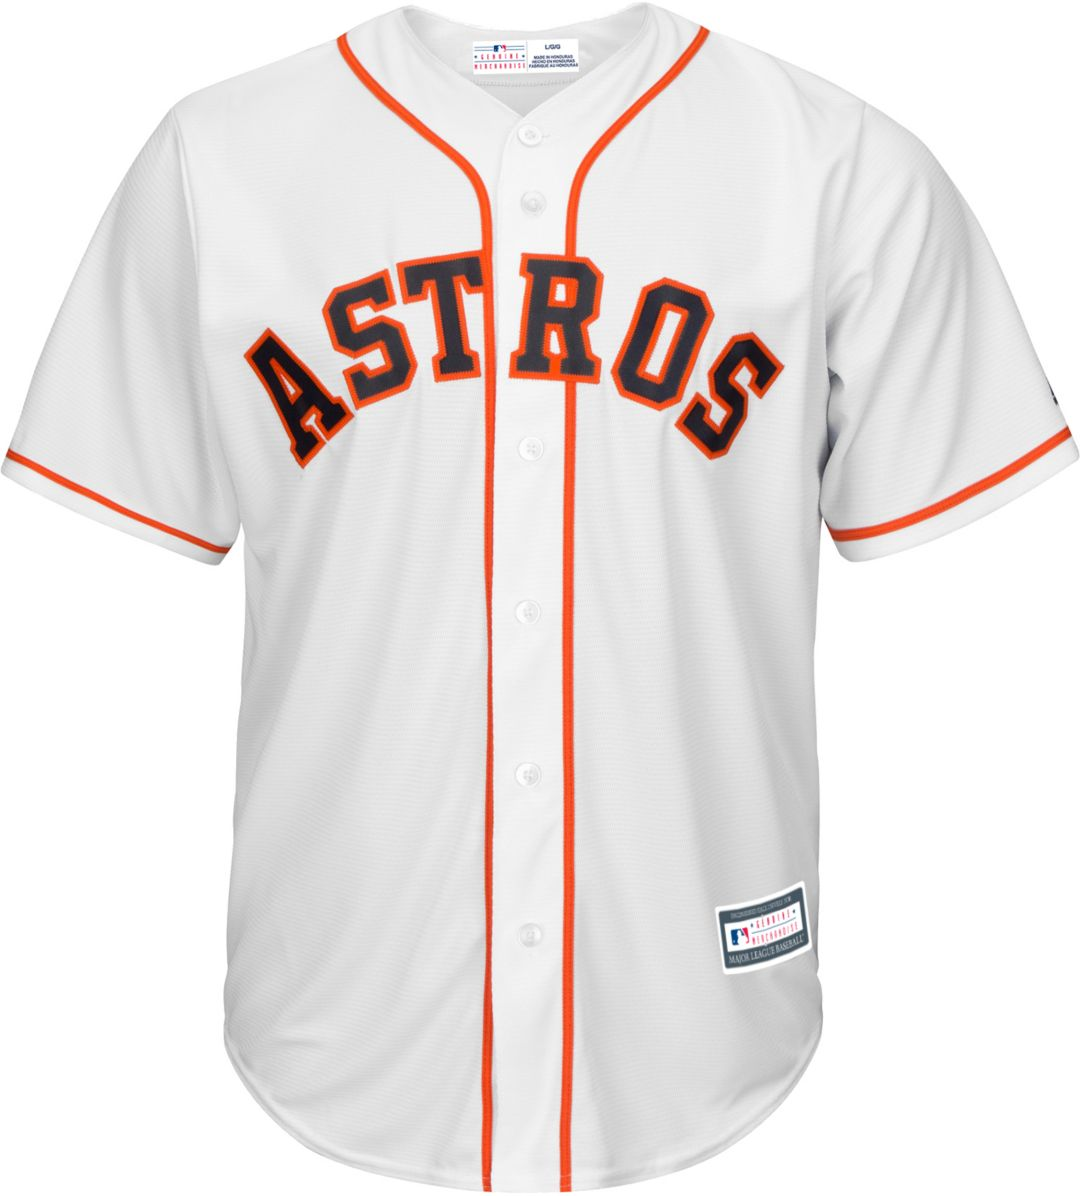 Astros Jersey White Home Replica 2 Alex Houston Youth Bregman